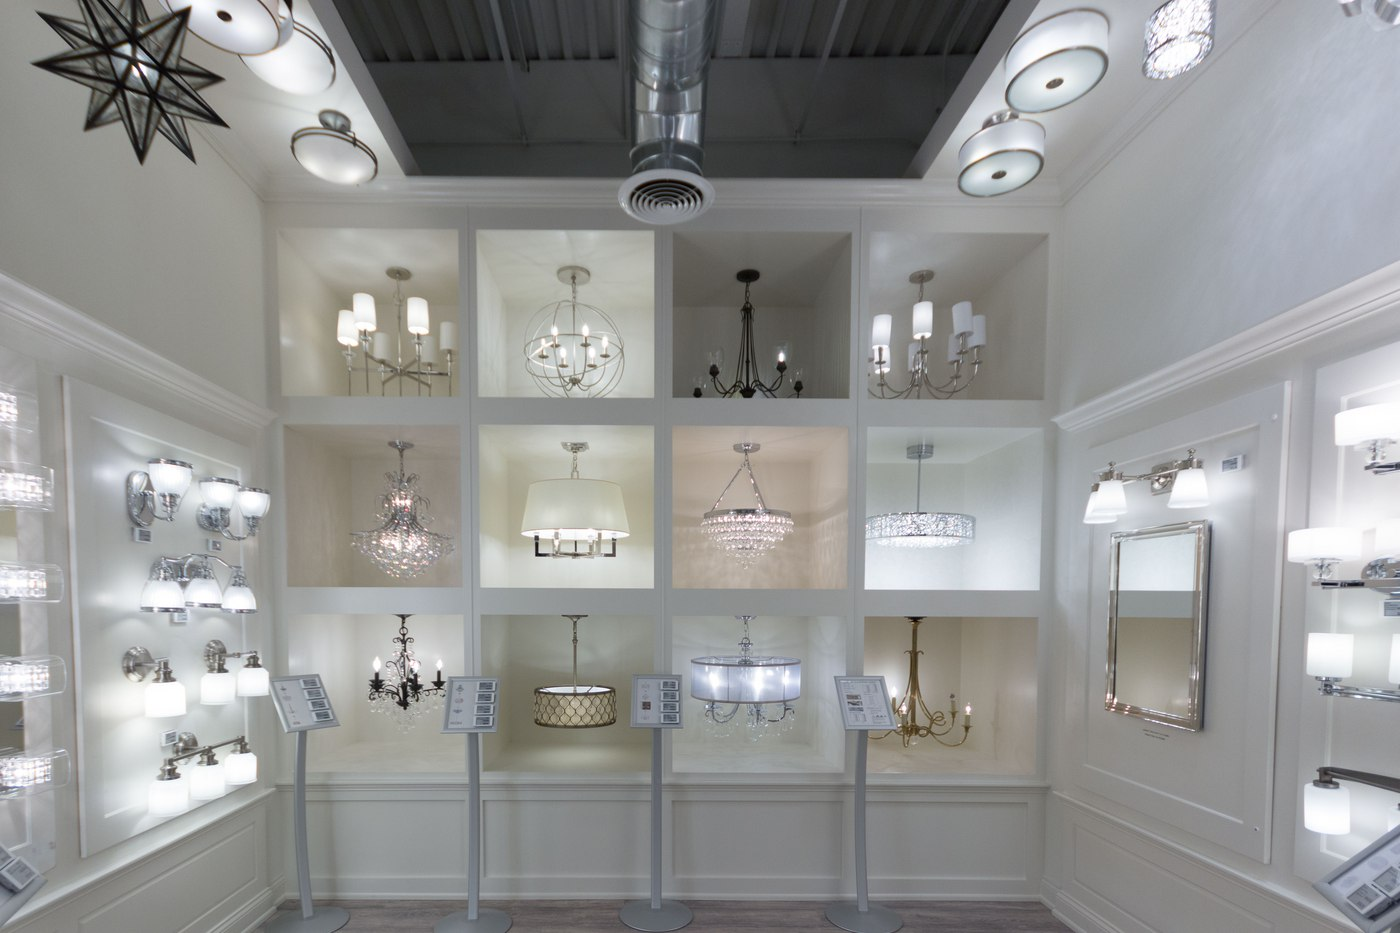 The Best Decorative Lighting for Home Show 2017